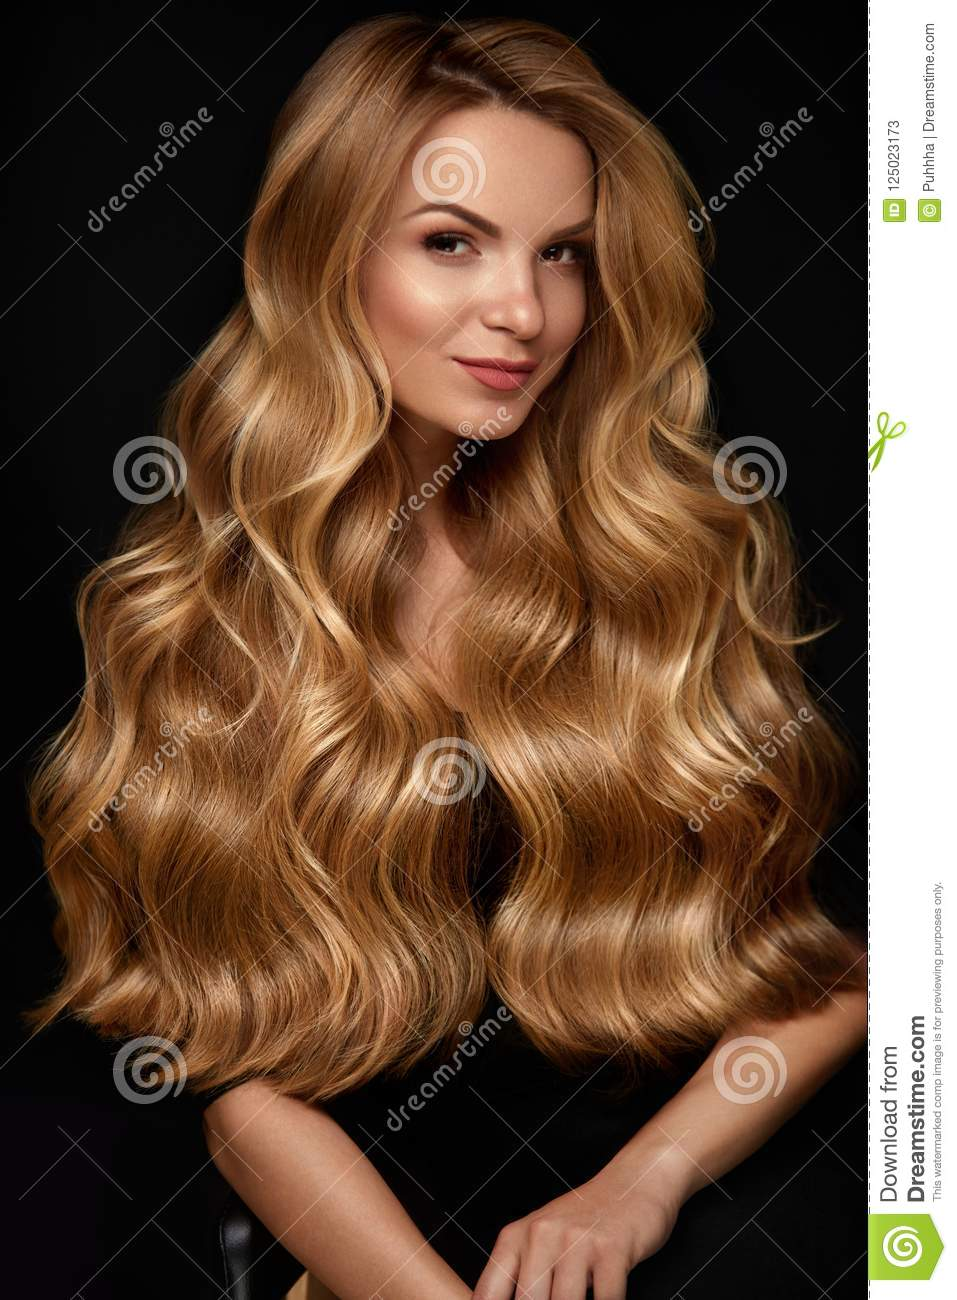 Long Blonde Hair Woman With Wavy Hairstyle Beauty Face